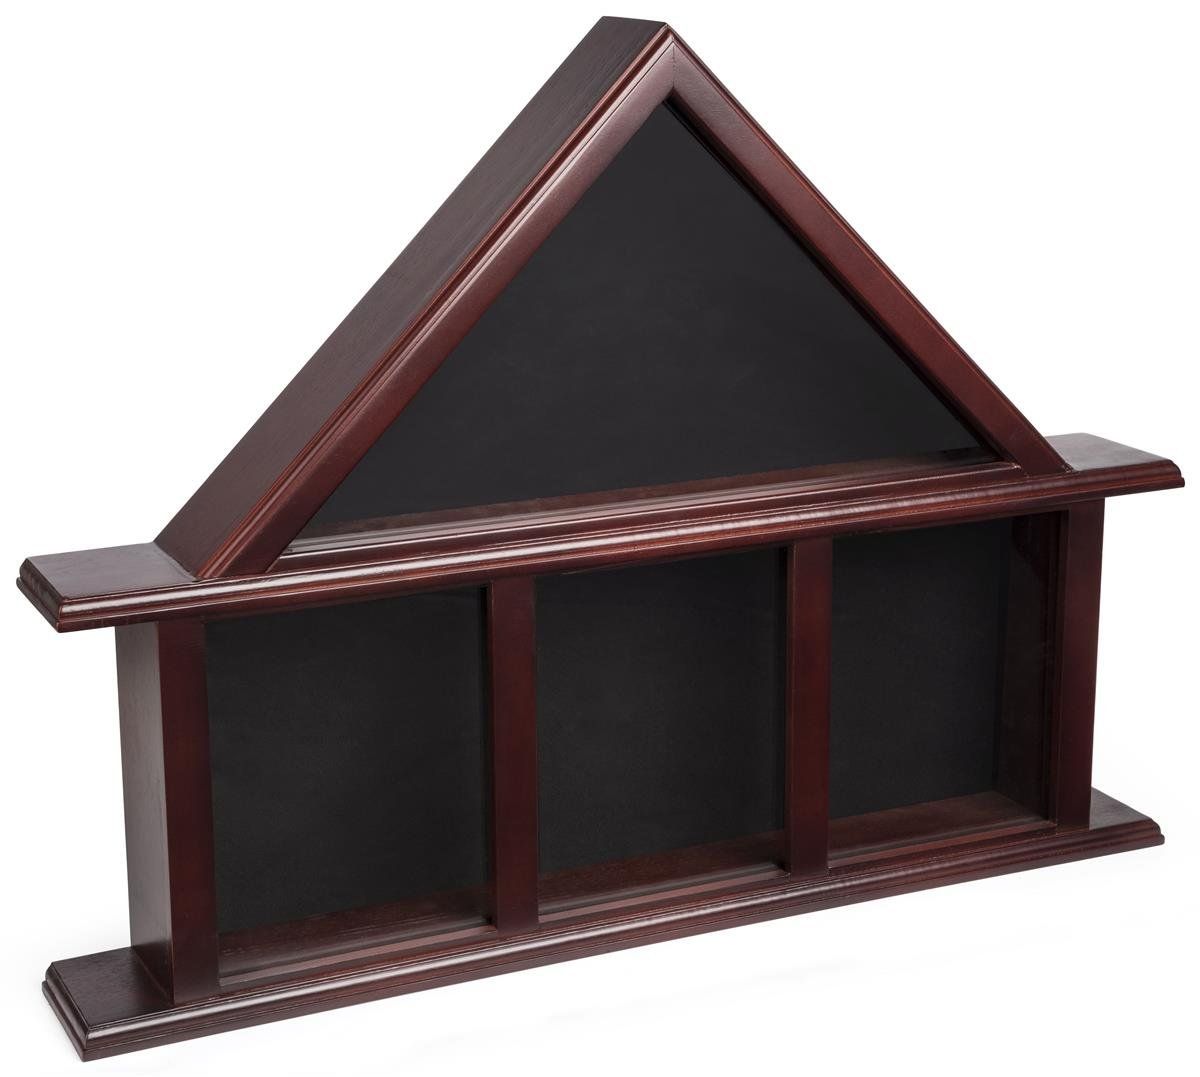 Displays2go, Glass Flag Military Medals Case, Tempered Glass, Pine Wood Construction, and Felt Backer - Mahogany, Black Finish (FC59M3MH)